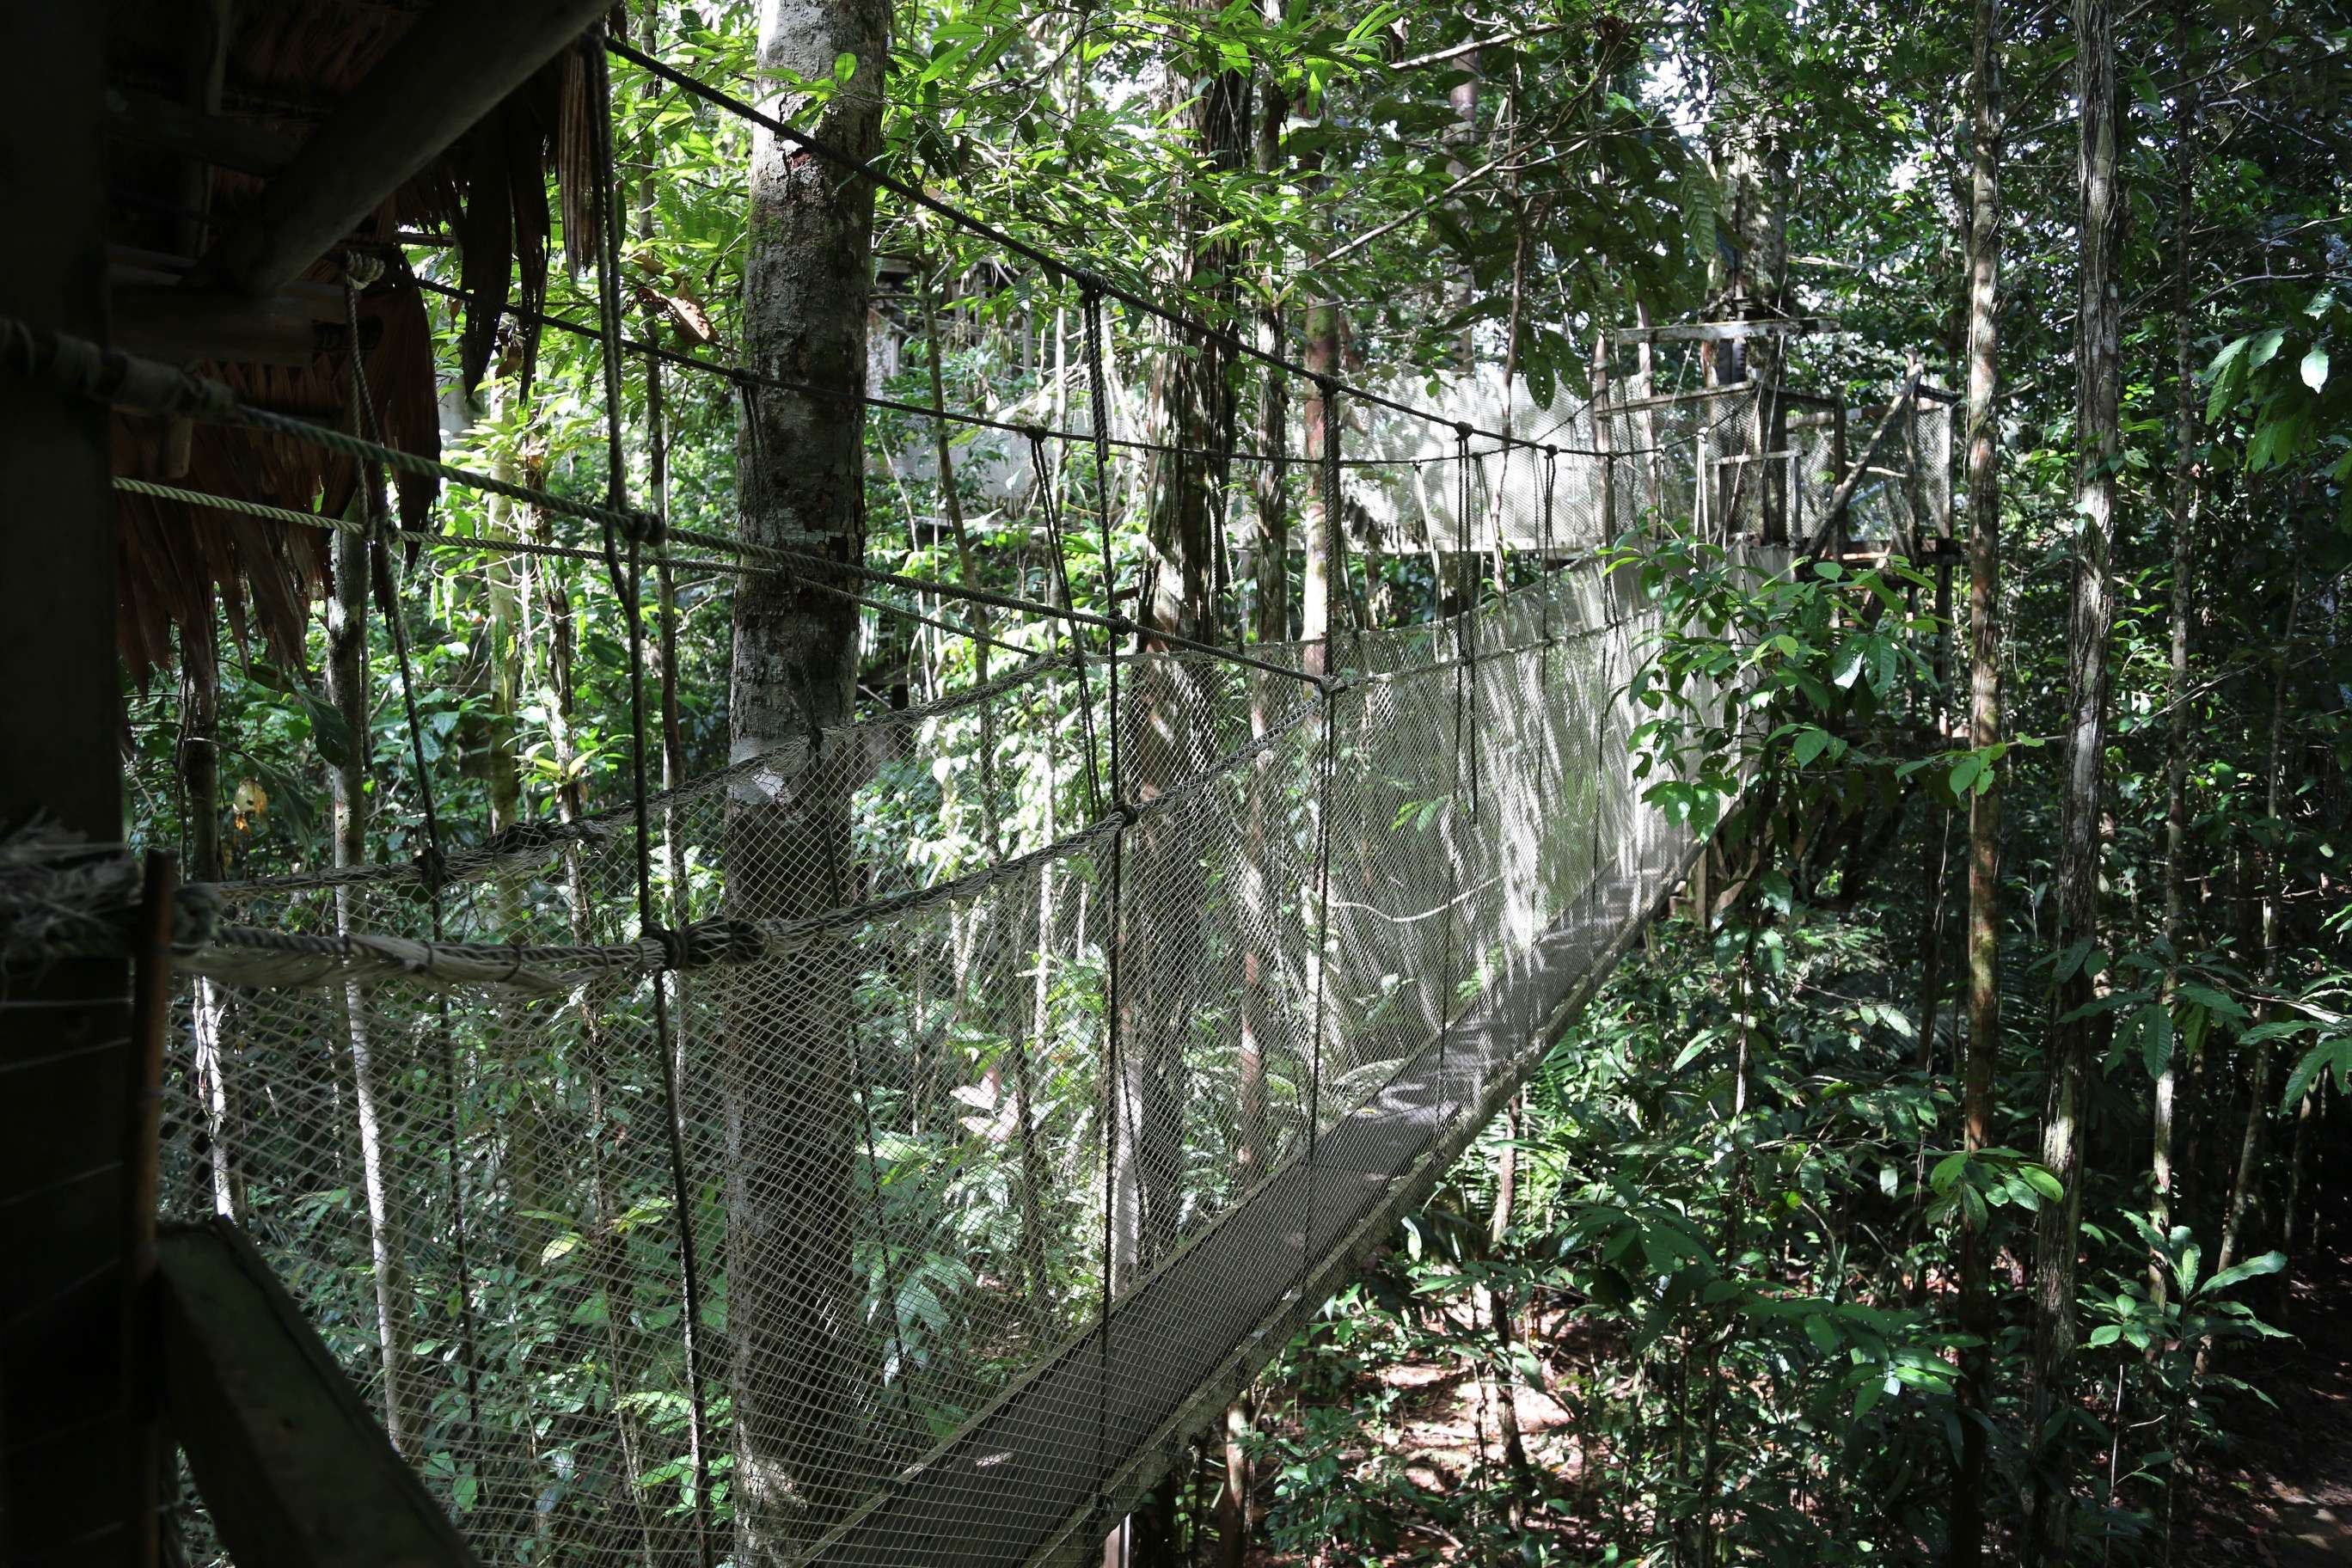 The walkways is actually quite sturdy, using steel cables for support and strong mesh to keep you from falling.